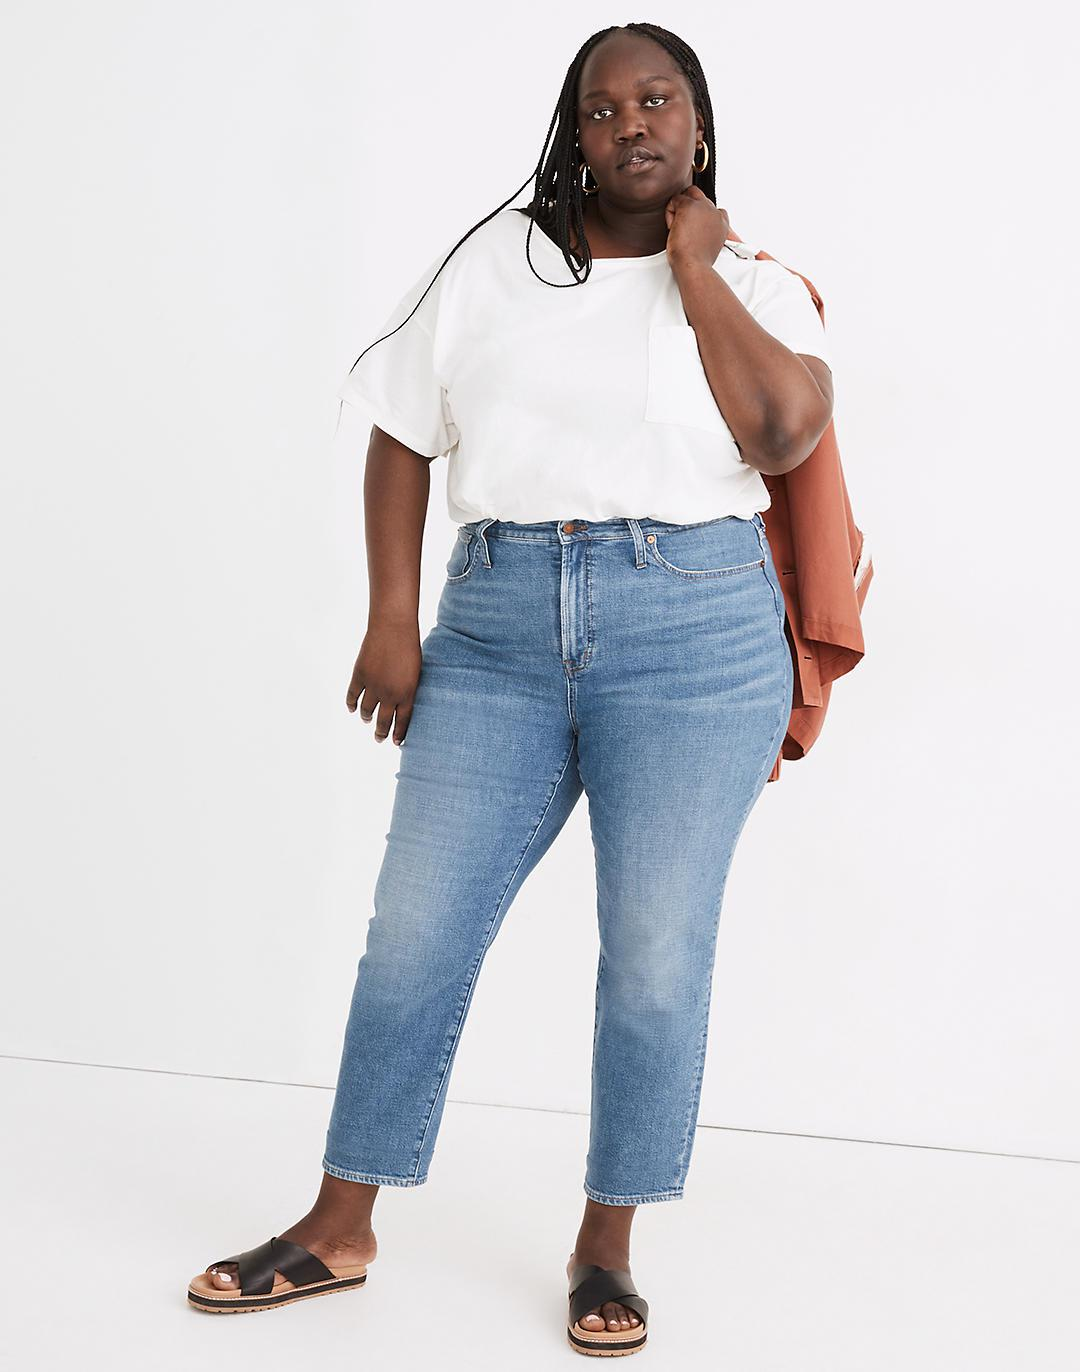 The Plus Curvy Perfect Vintage Crop Jean in Sandford Wash: Summerweight Edition